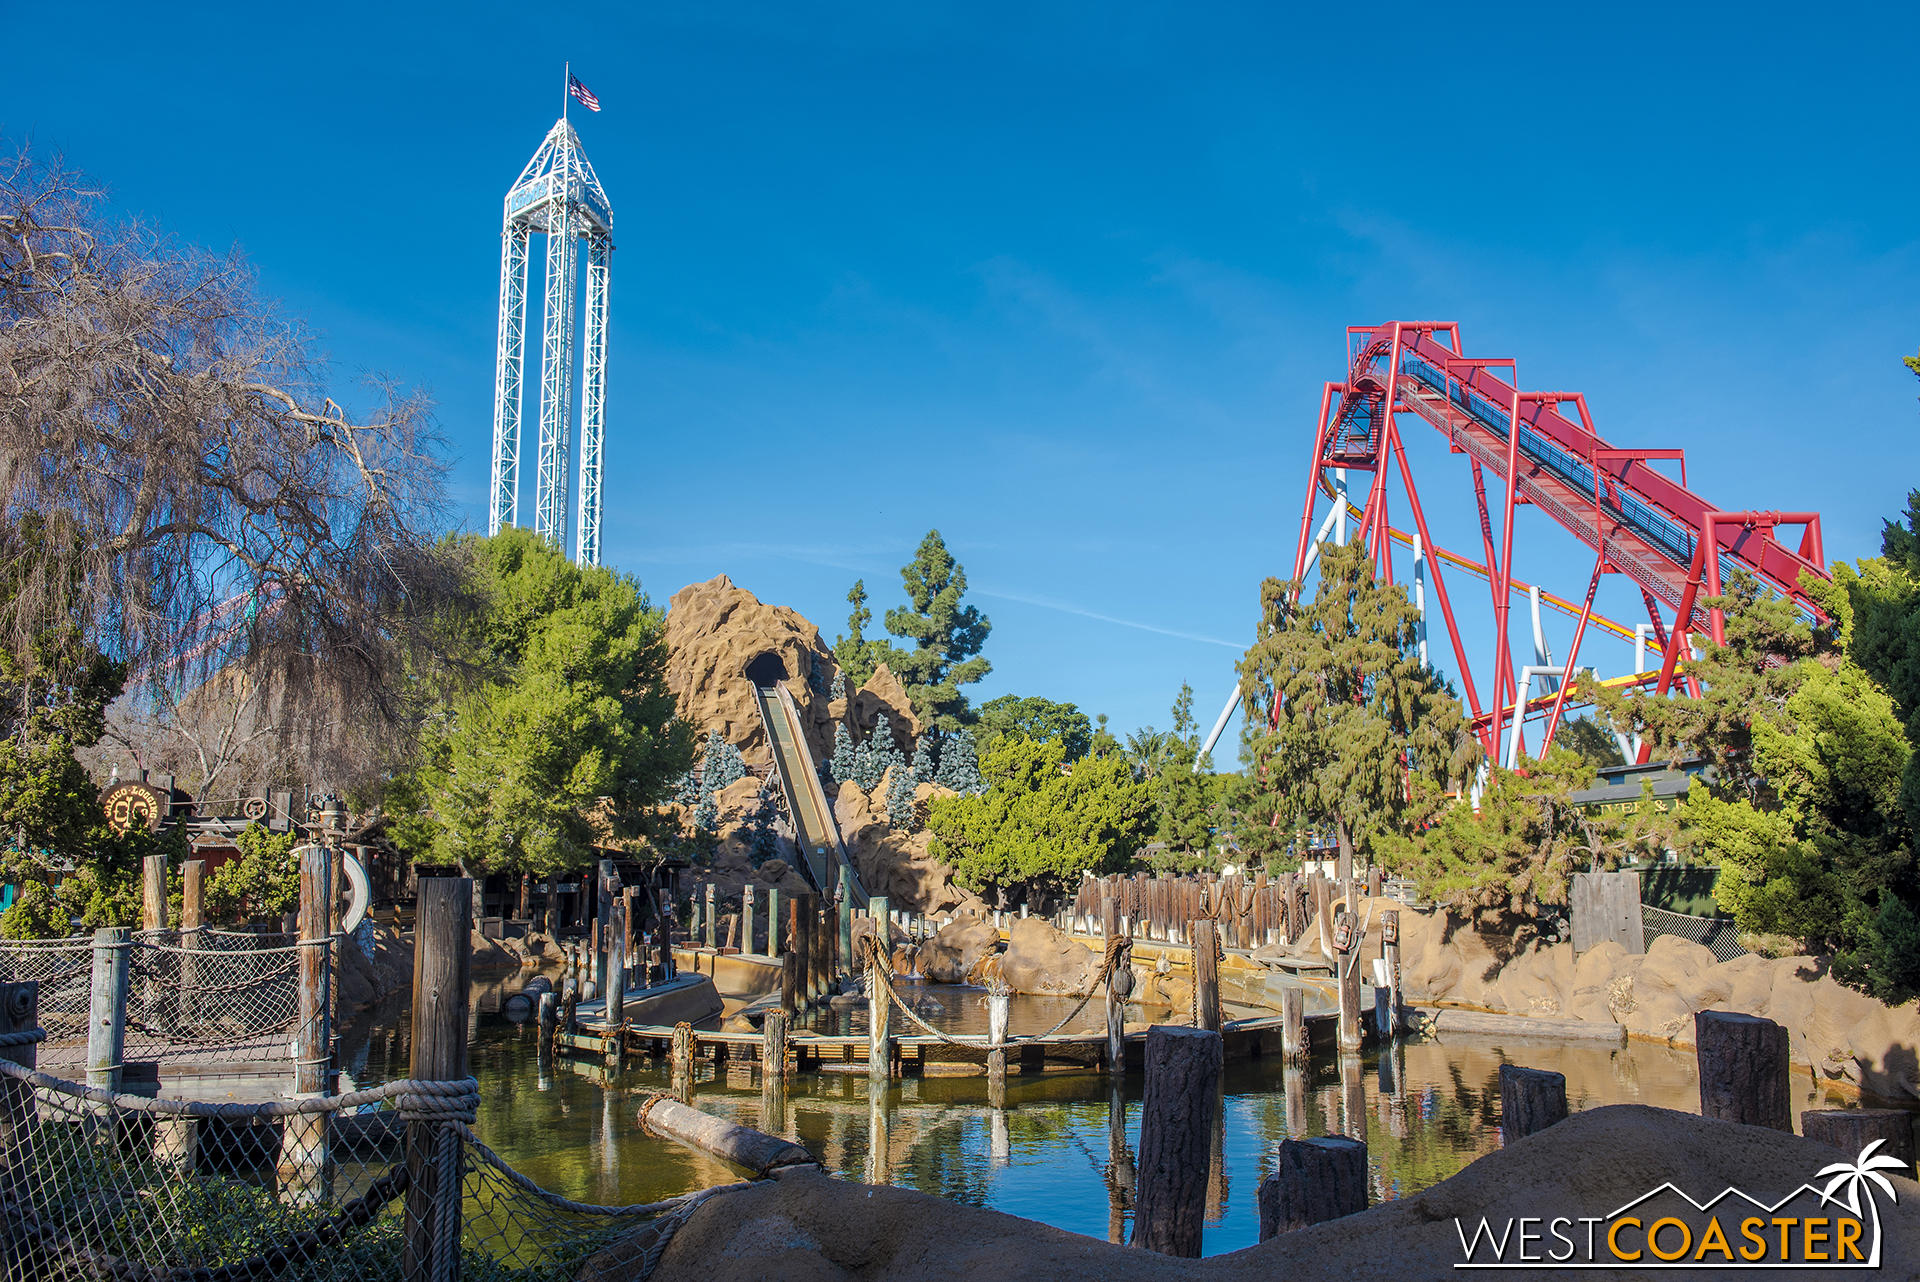 Log Ride and Splash Mountain have gone south for the winter.